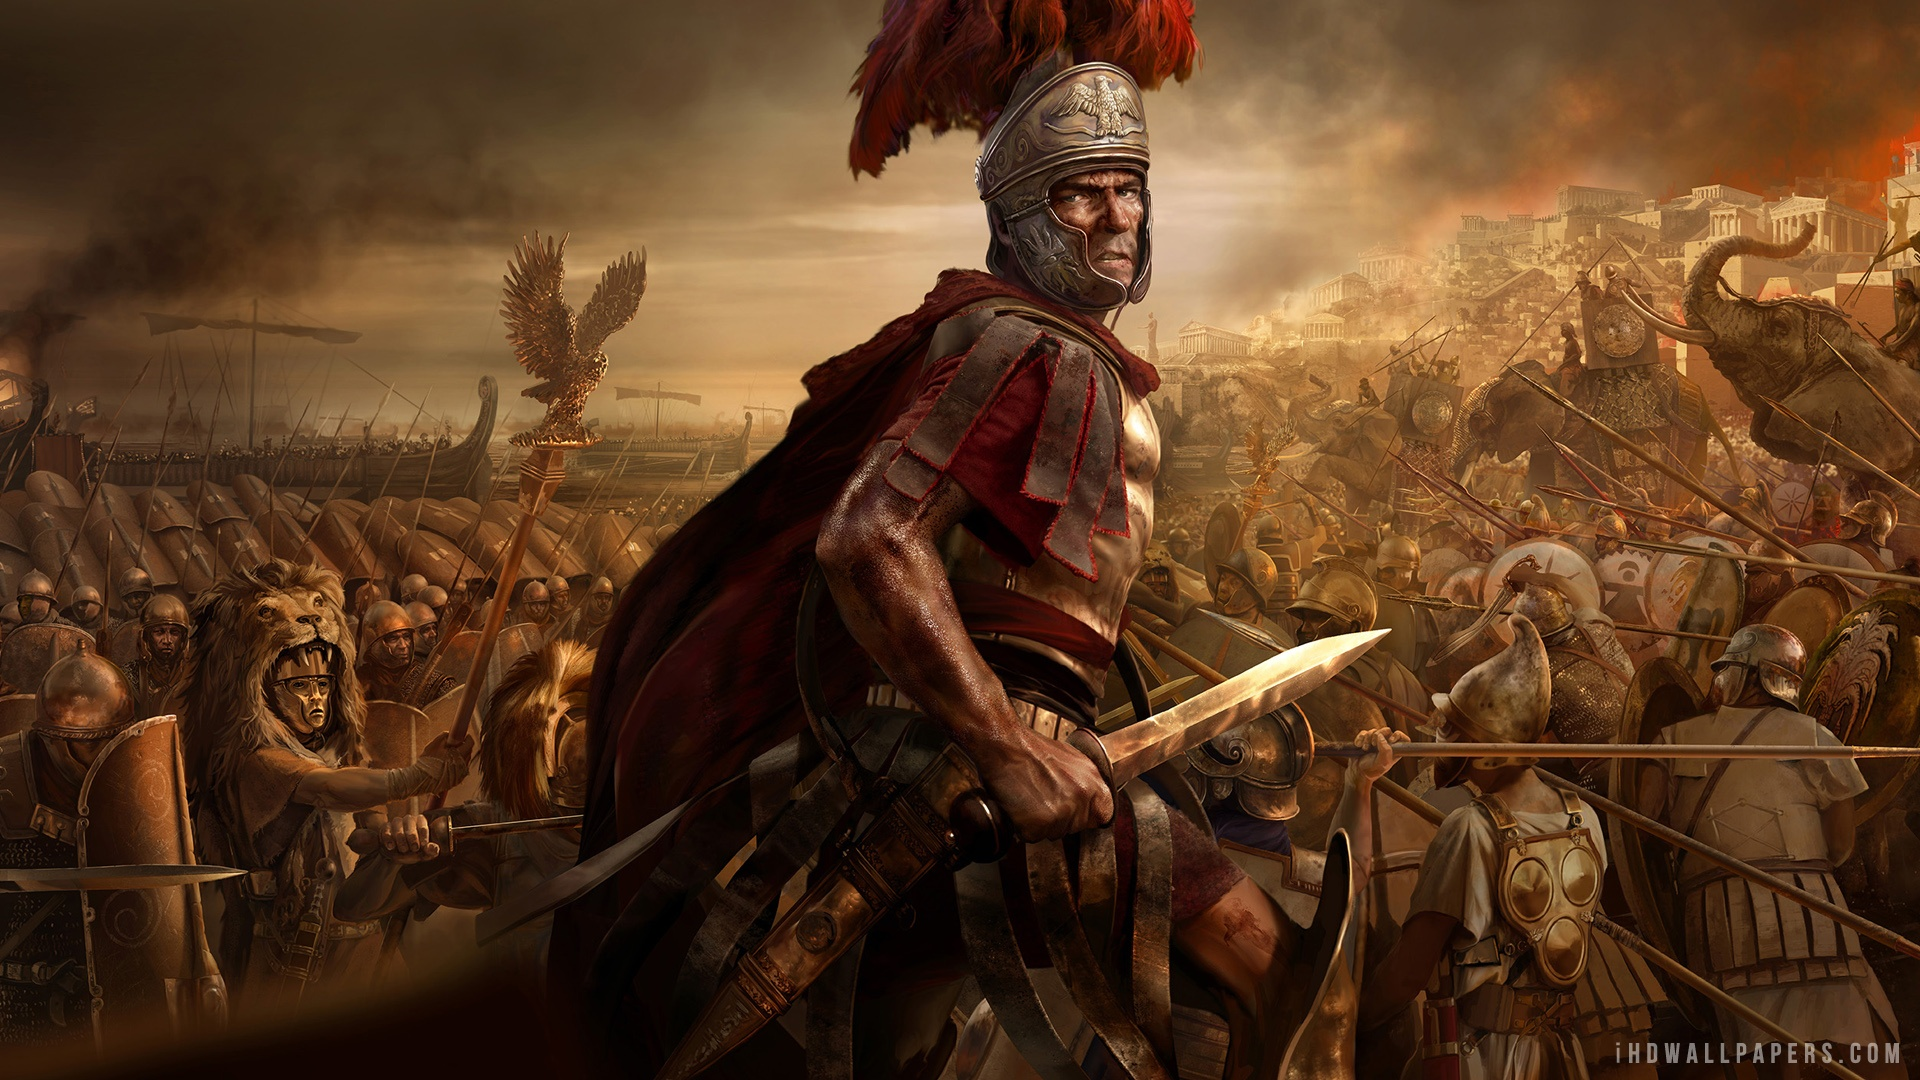 Total War Rome 2 HD Wallpaper   iHD Wallpapers 1920x1080